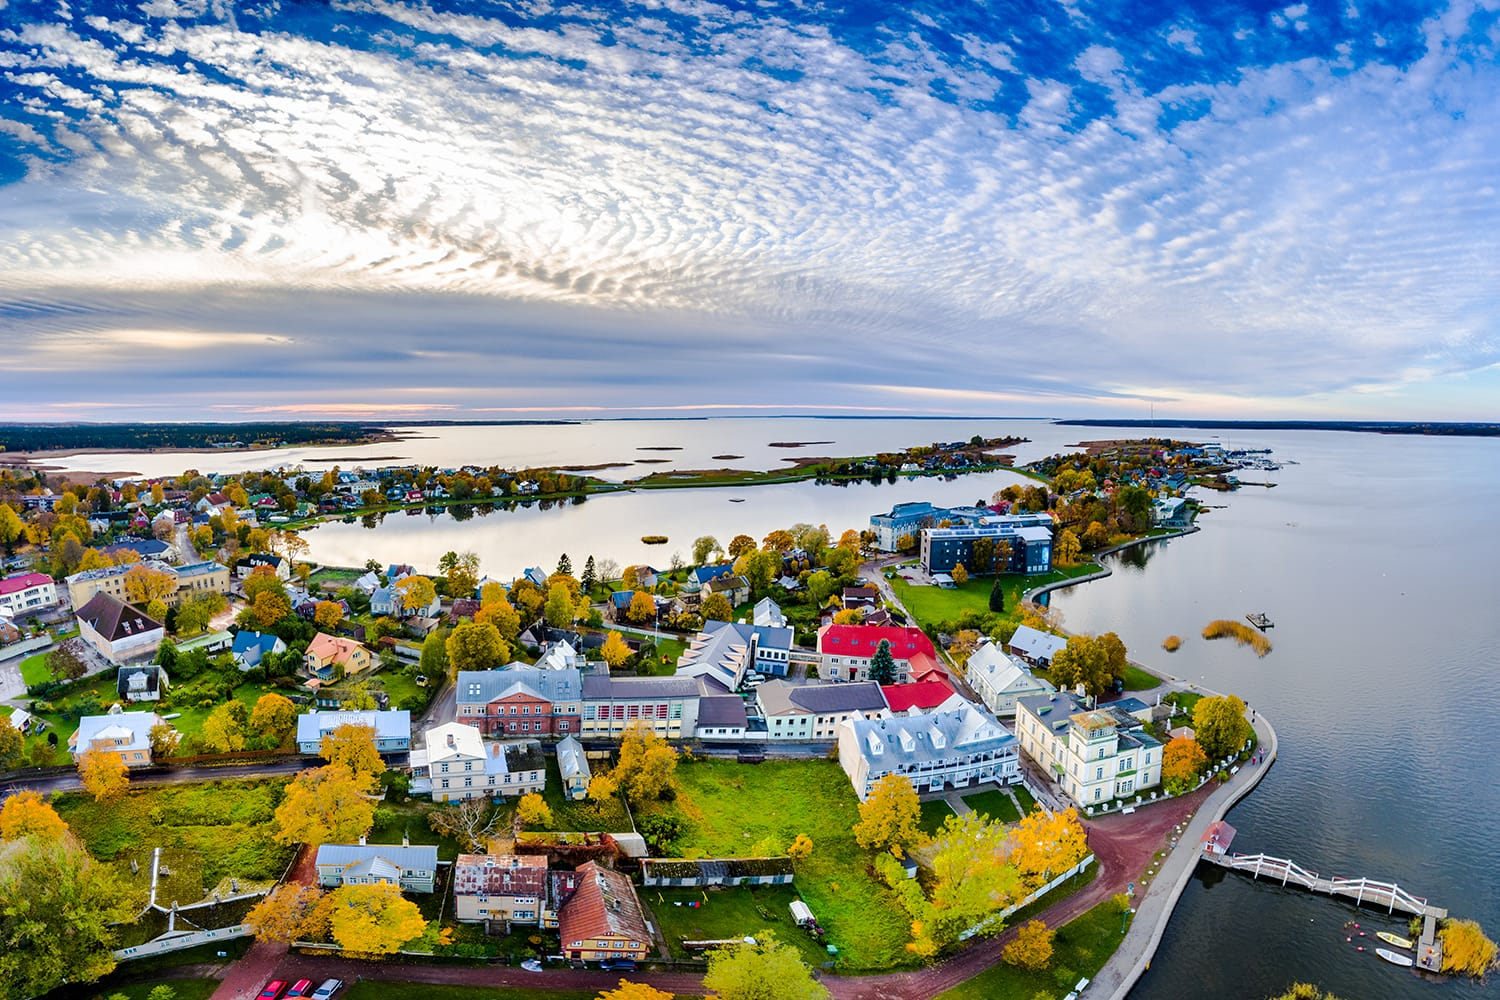 Aerial view of Haapsalu, Estonia